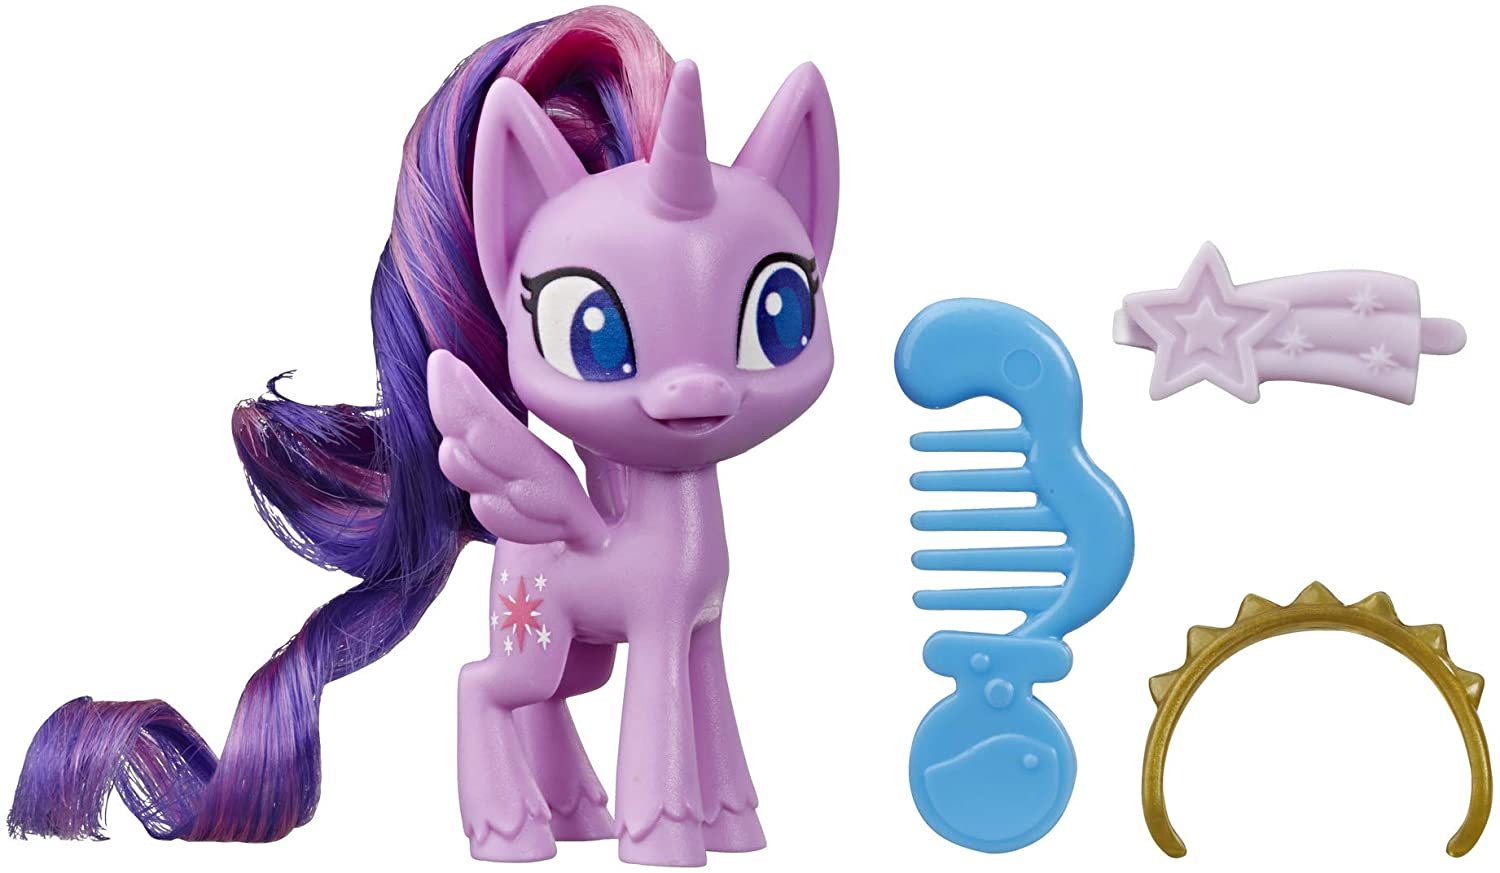 MLP Princess Twilight Sparkle Potion Figure 2